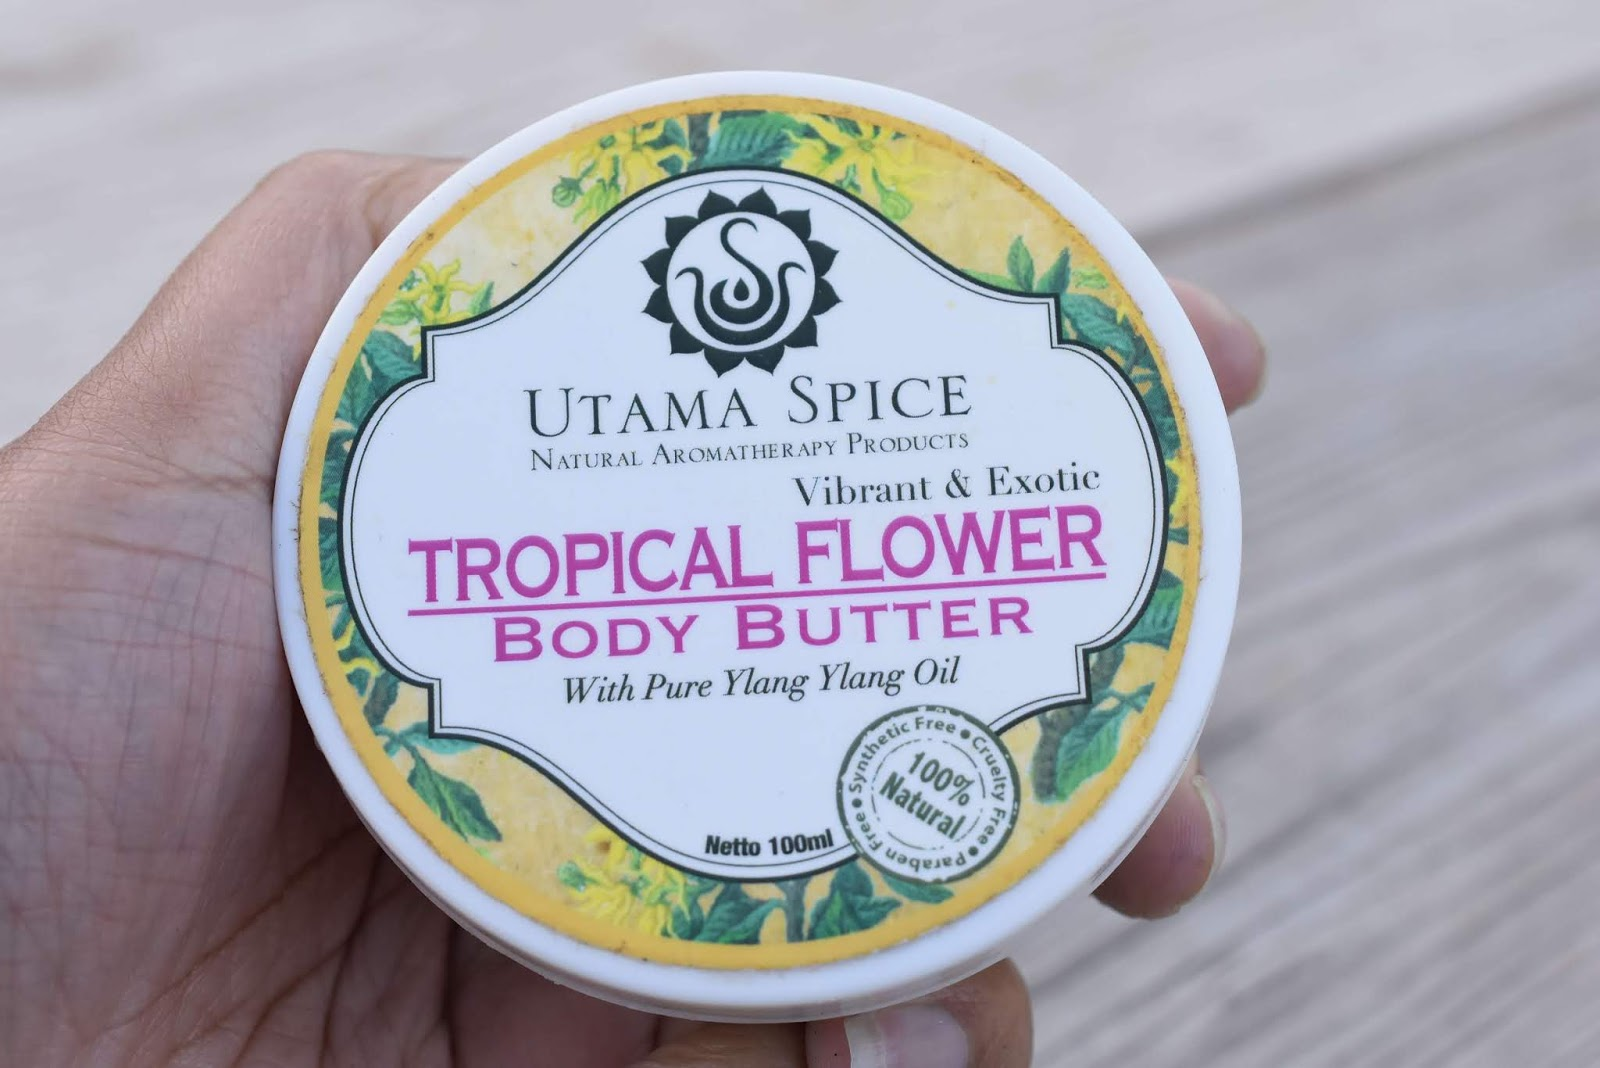 100% Natural Aromatherapy Products Helping My Mind, Body, and Soul: Utama Spice  via  www.productreviewmom.com